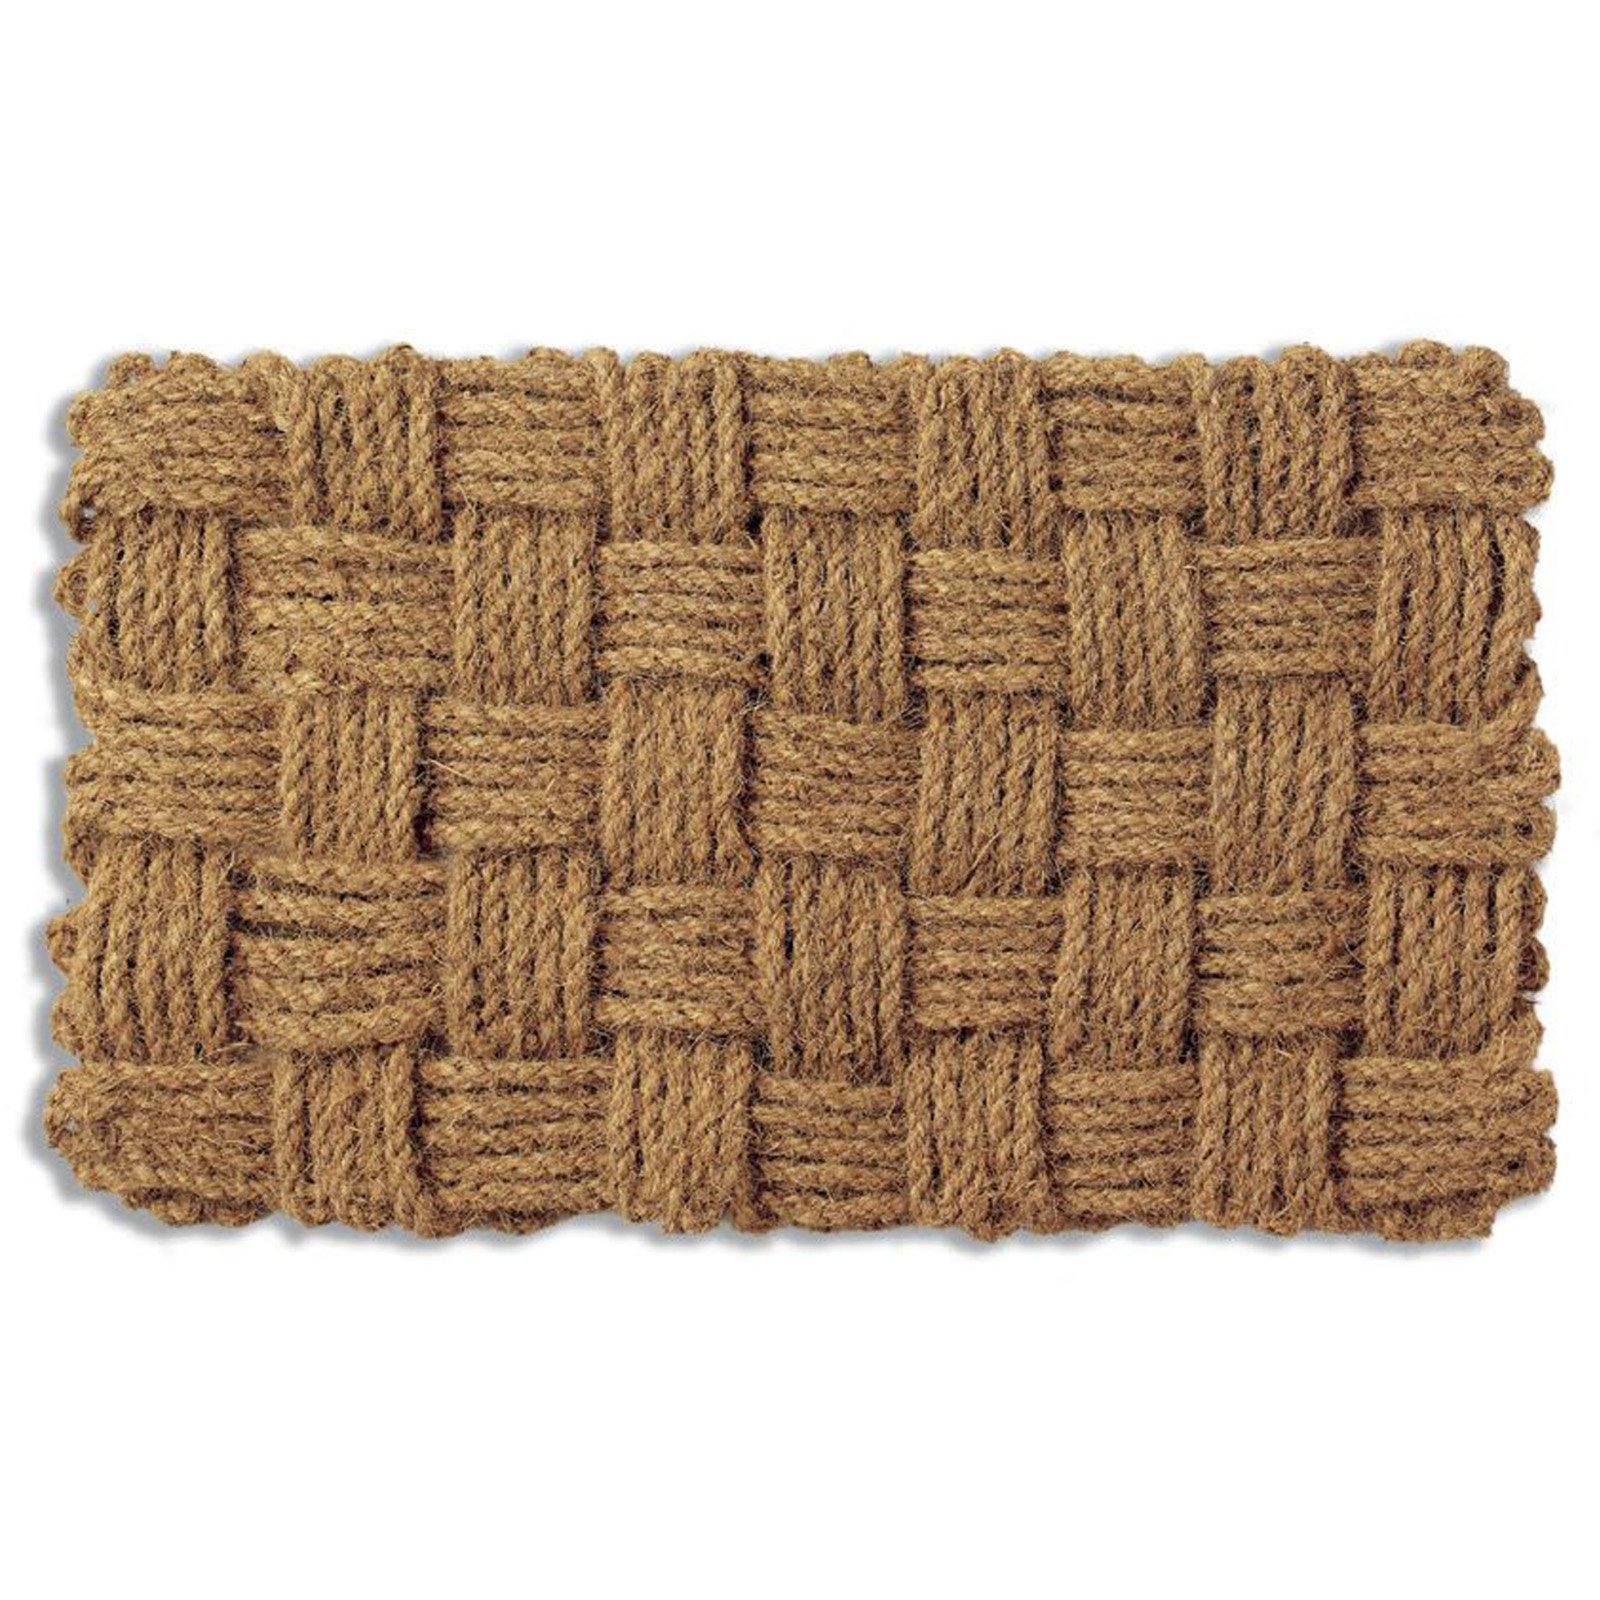 Tag Woven Checks Coir Door Mat